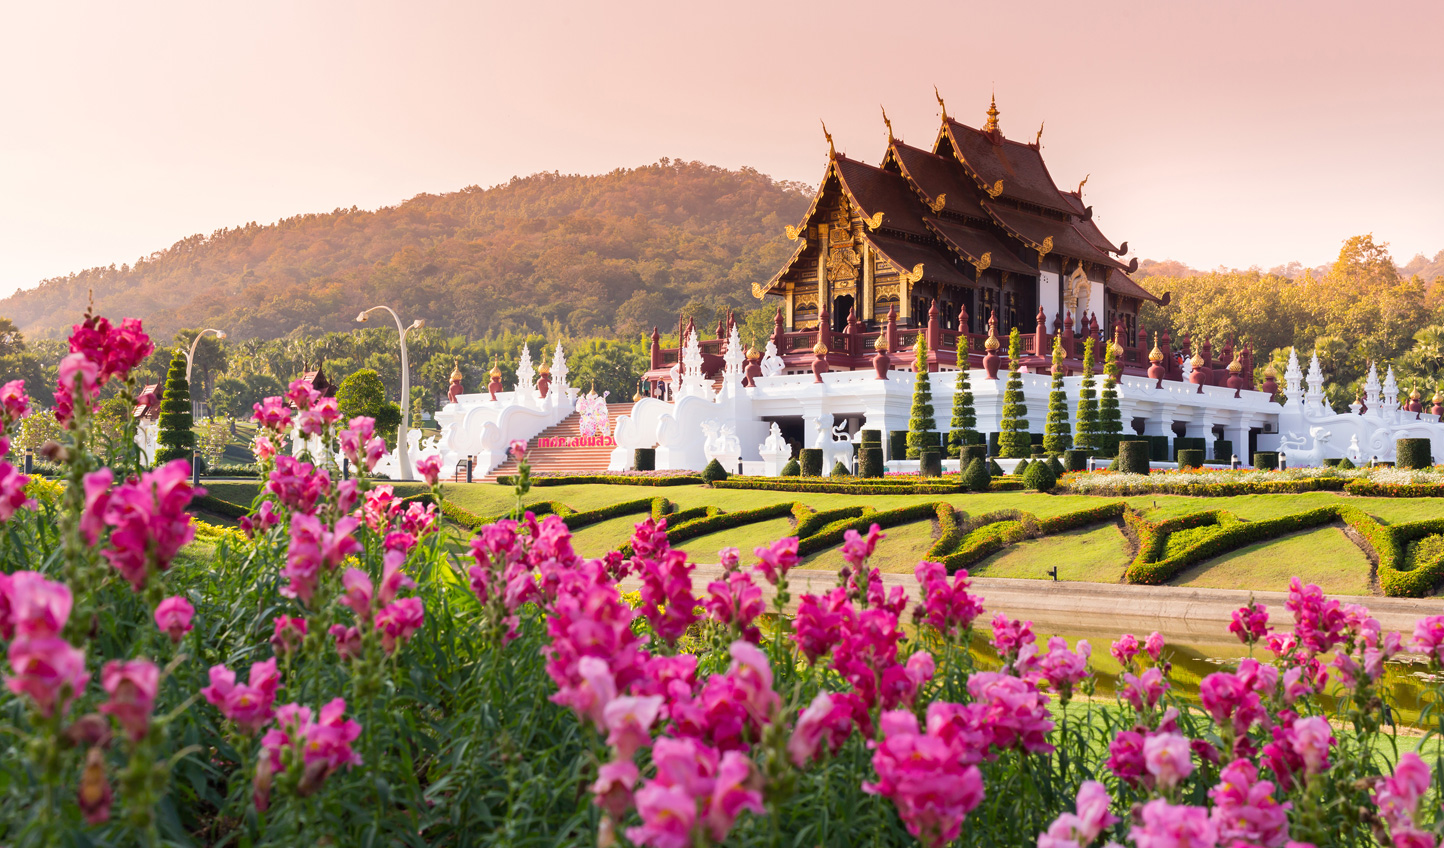 Jounrey to Thailand's cultural heart in Chiang Mai